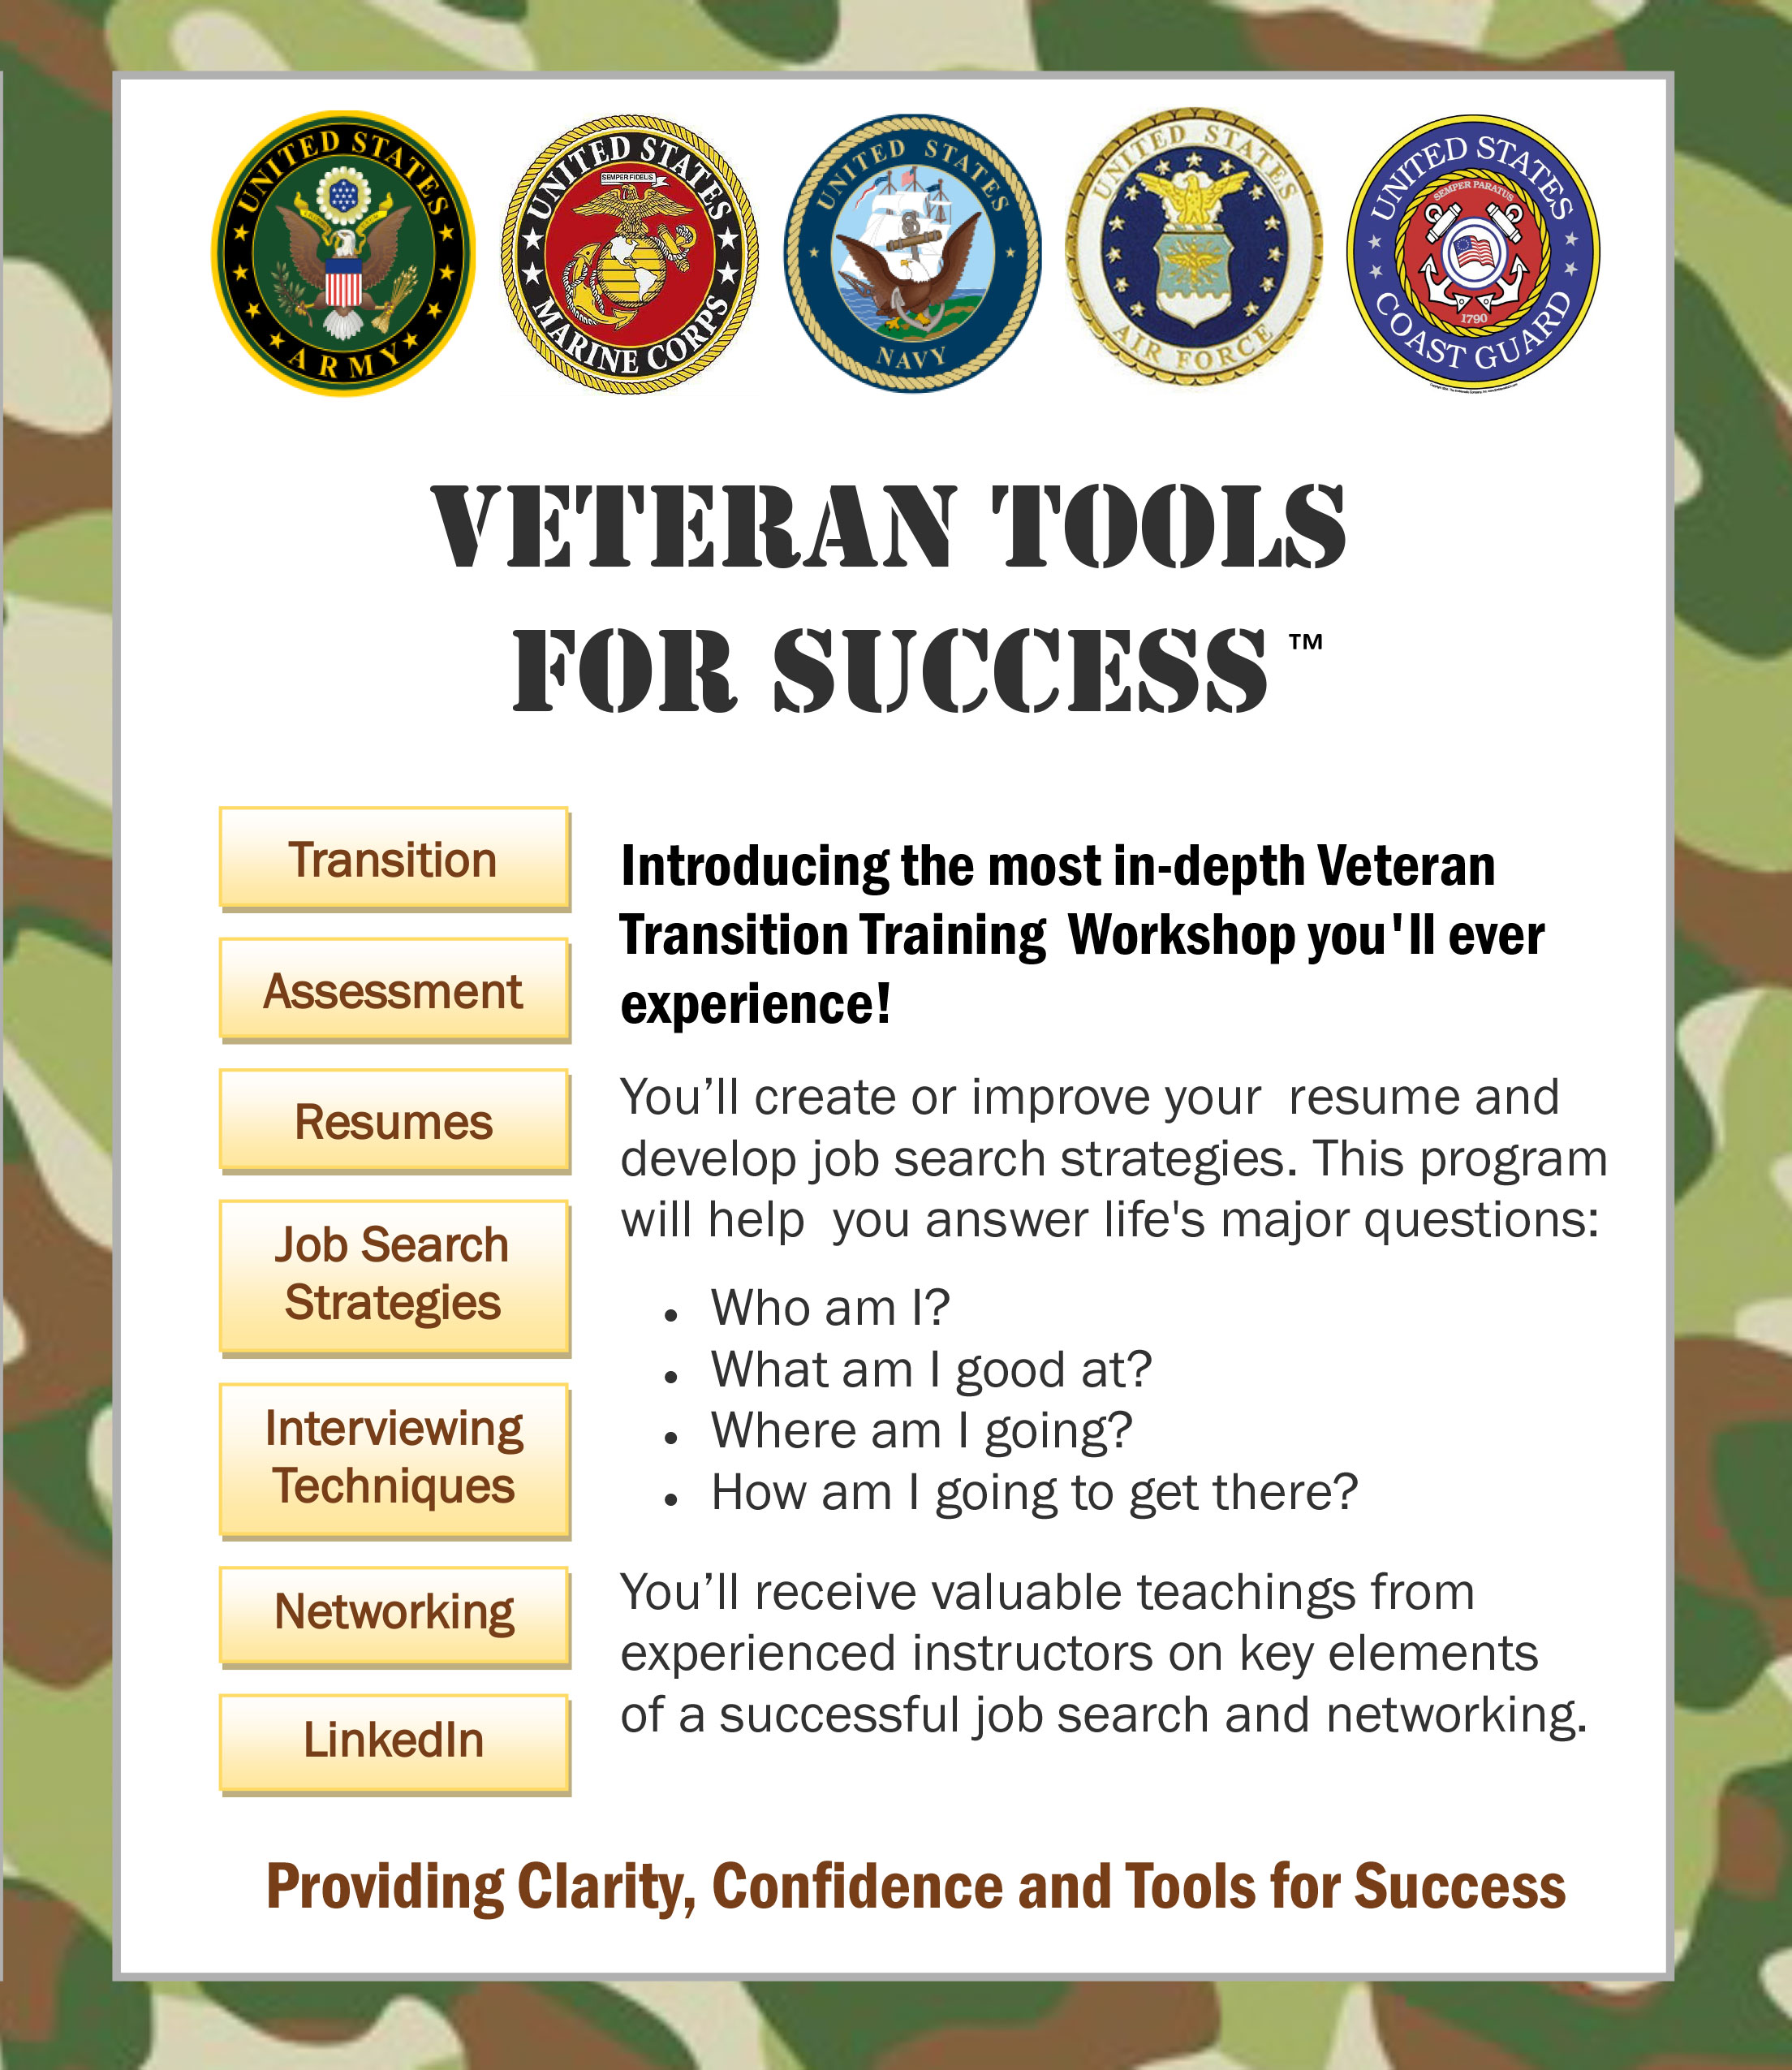 training ronsukenick com veterans will create or improve their resumes and develop job search strategies this program will help veterans